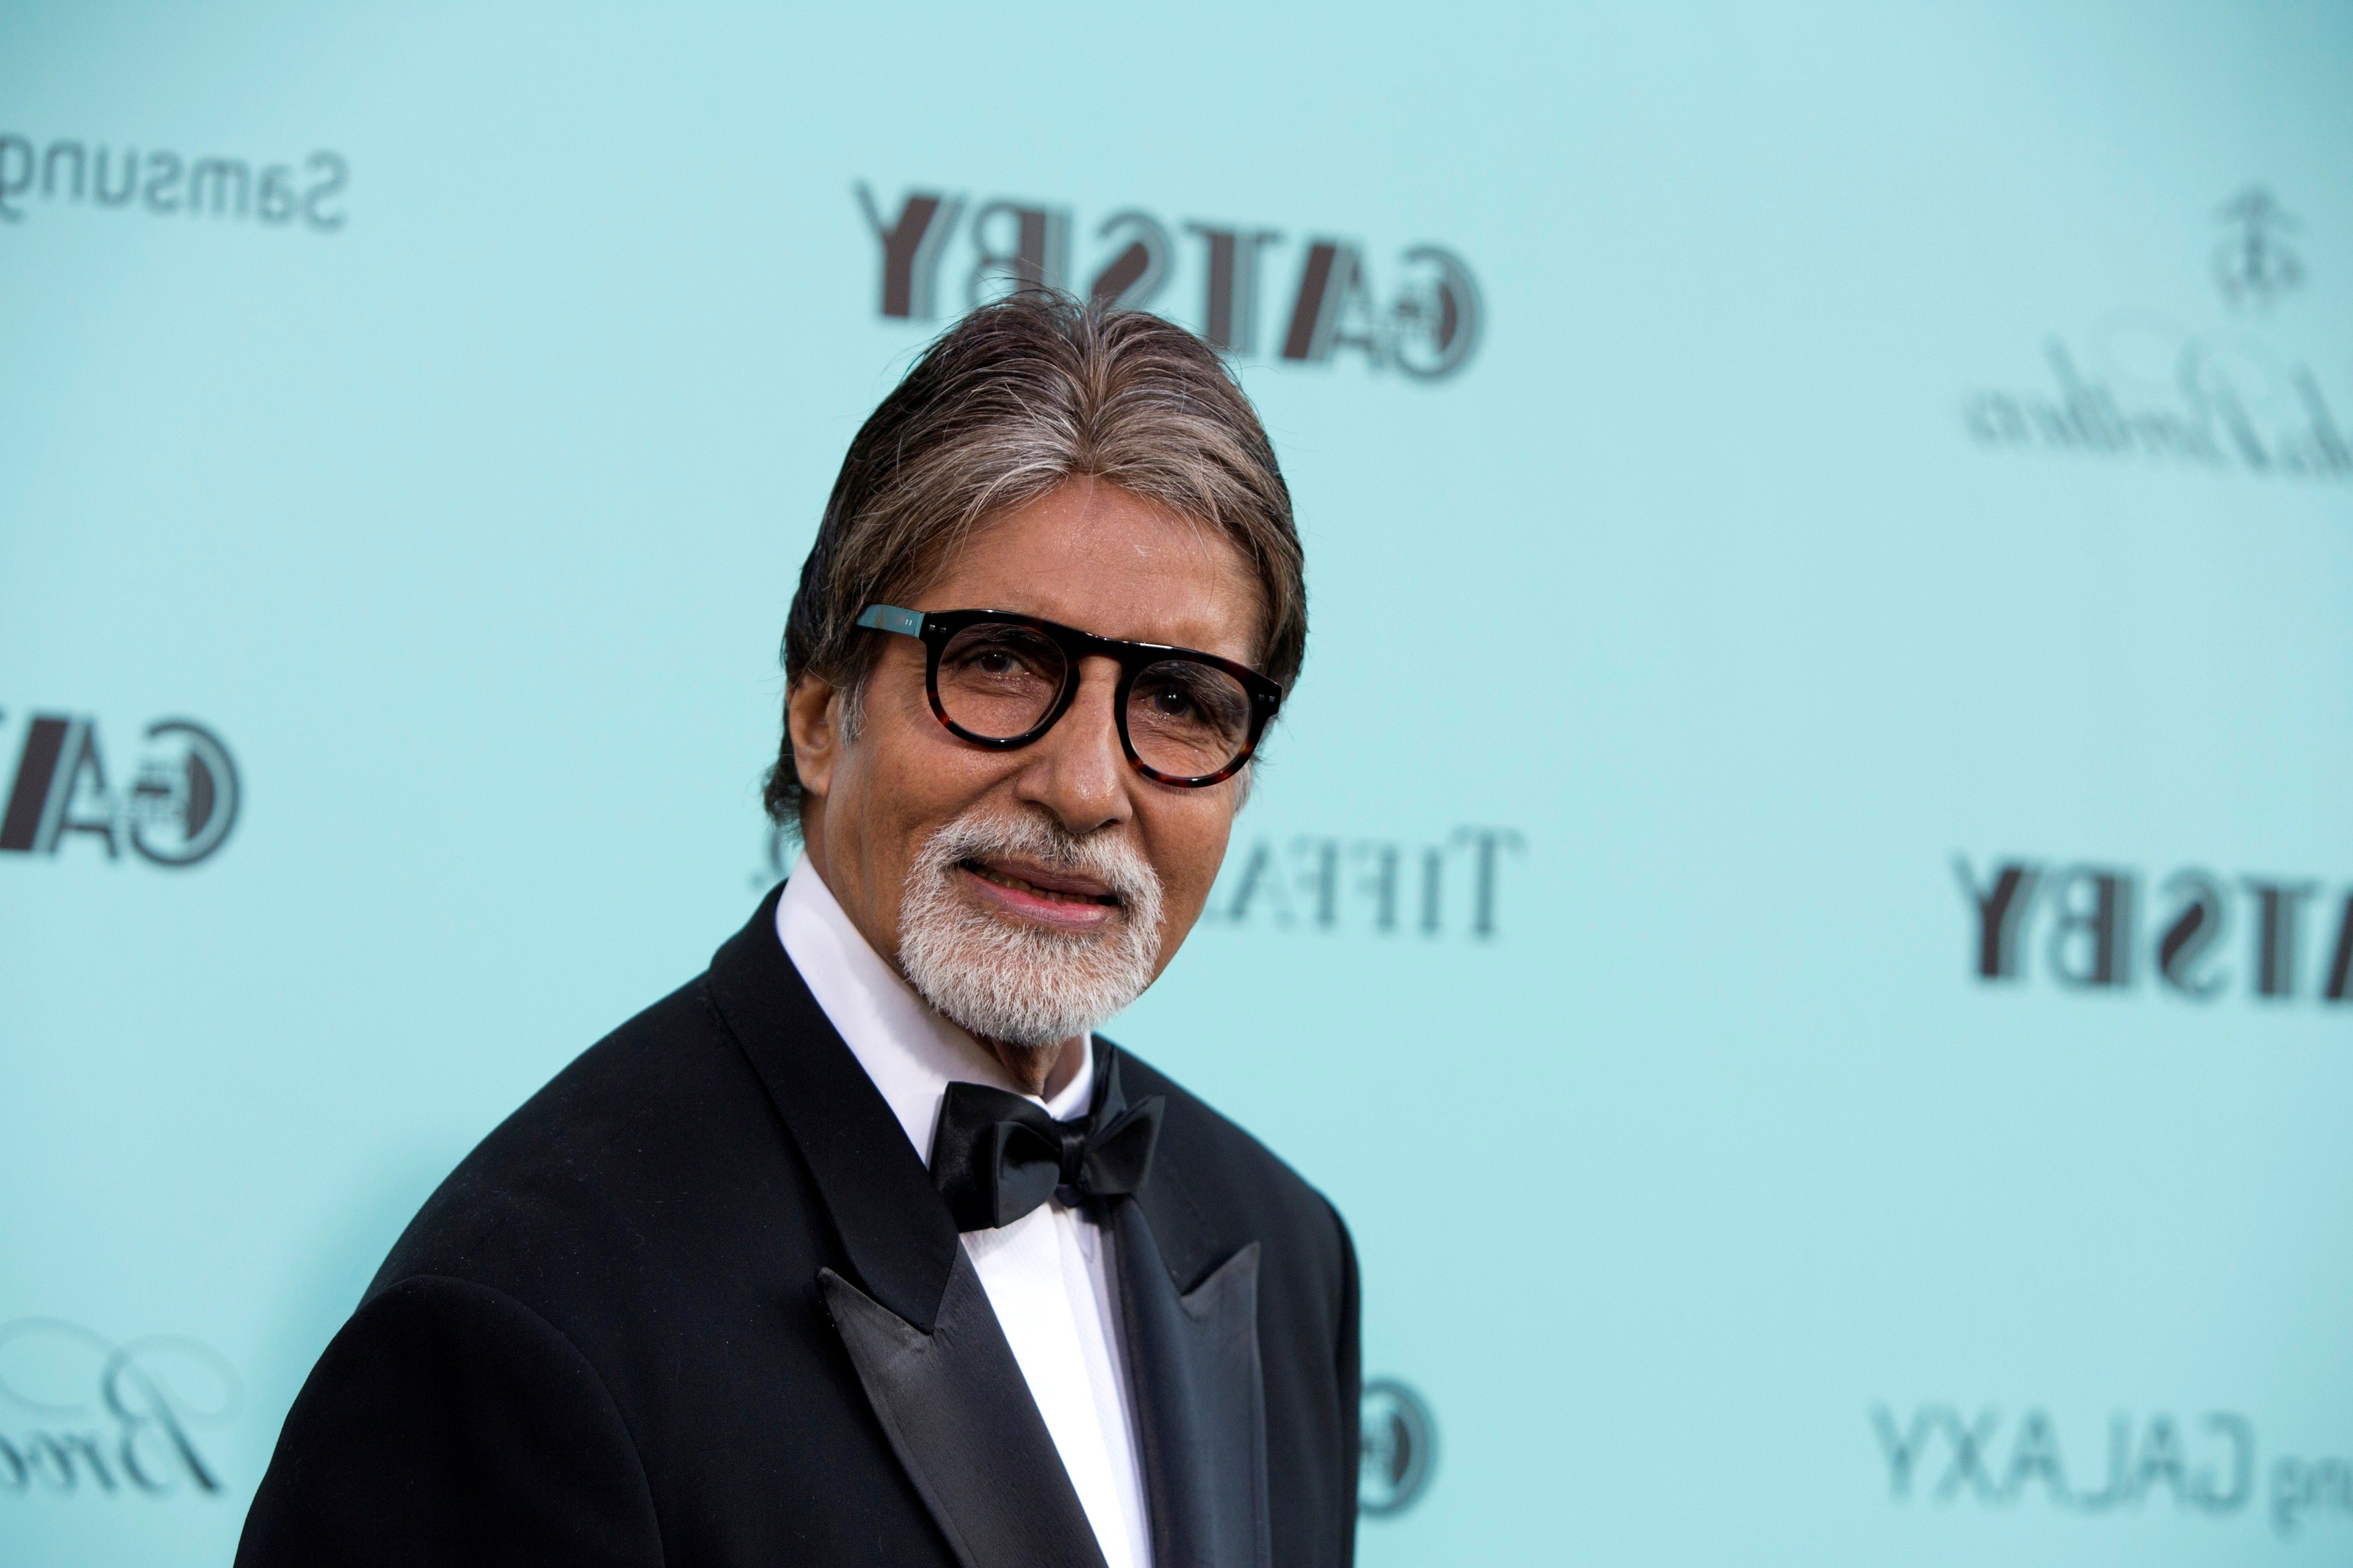 Actor Amitabh Bachchan attends the 'The Great Gatsby' world premiere at Avery Fisher Hall at Lincoln Center for the Performing Arts in New York